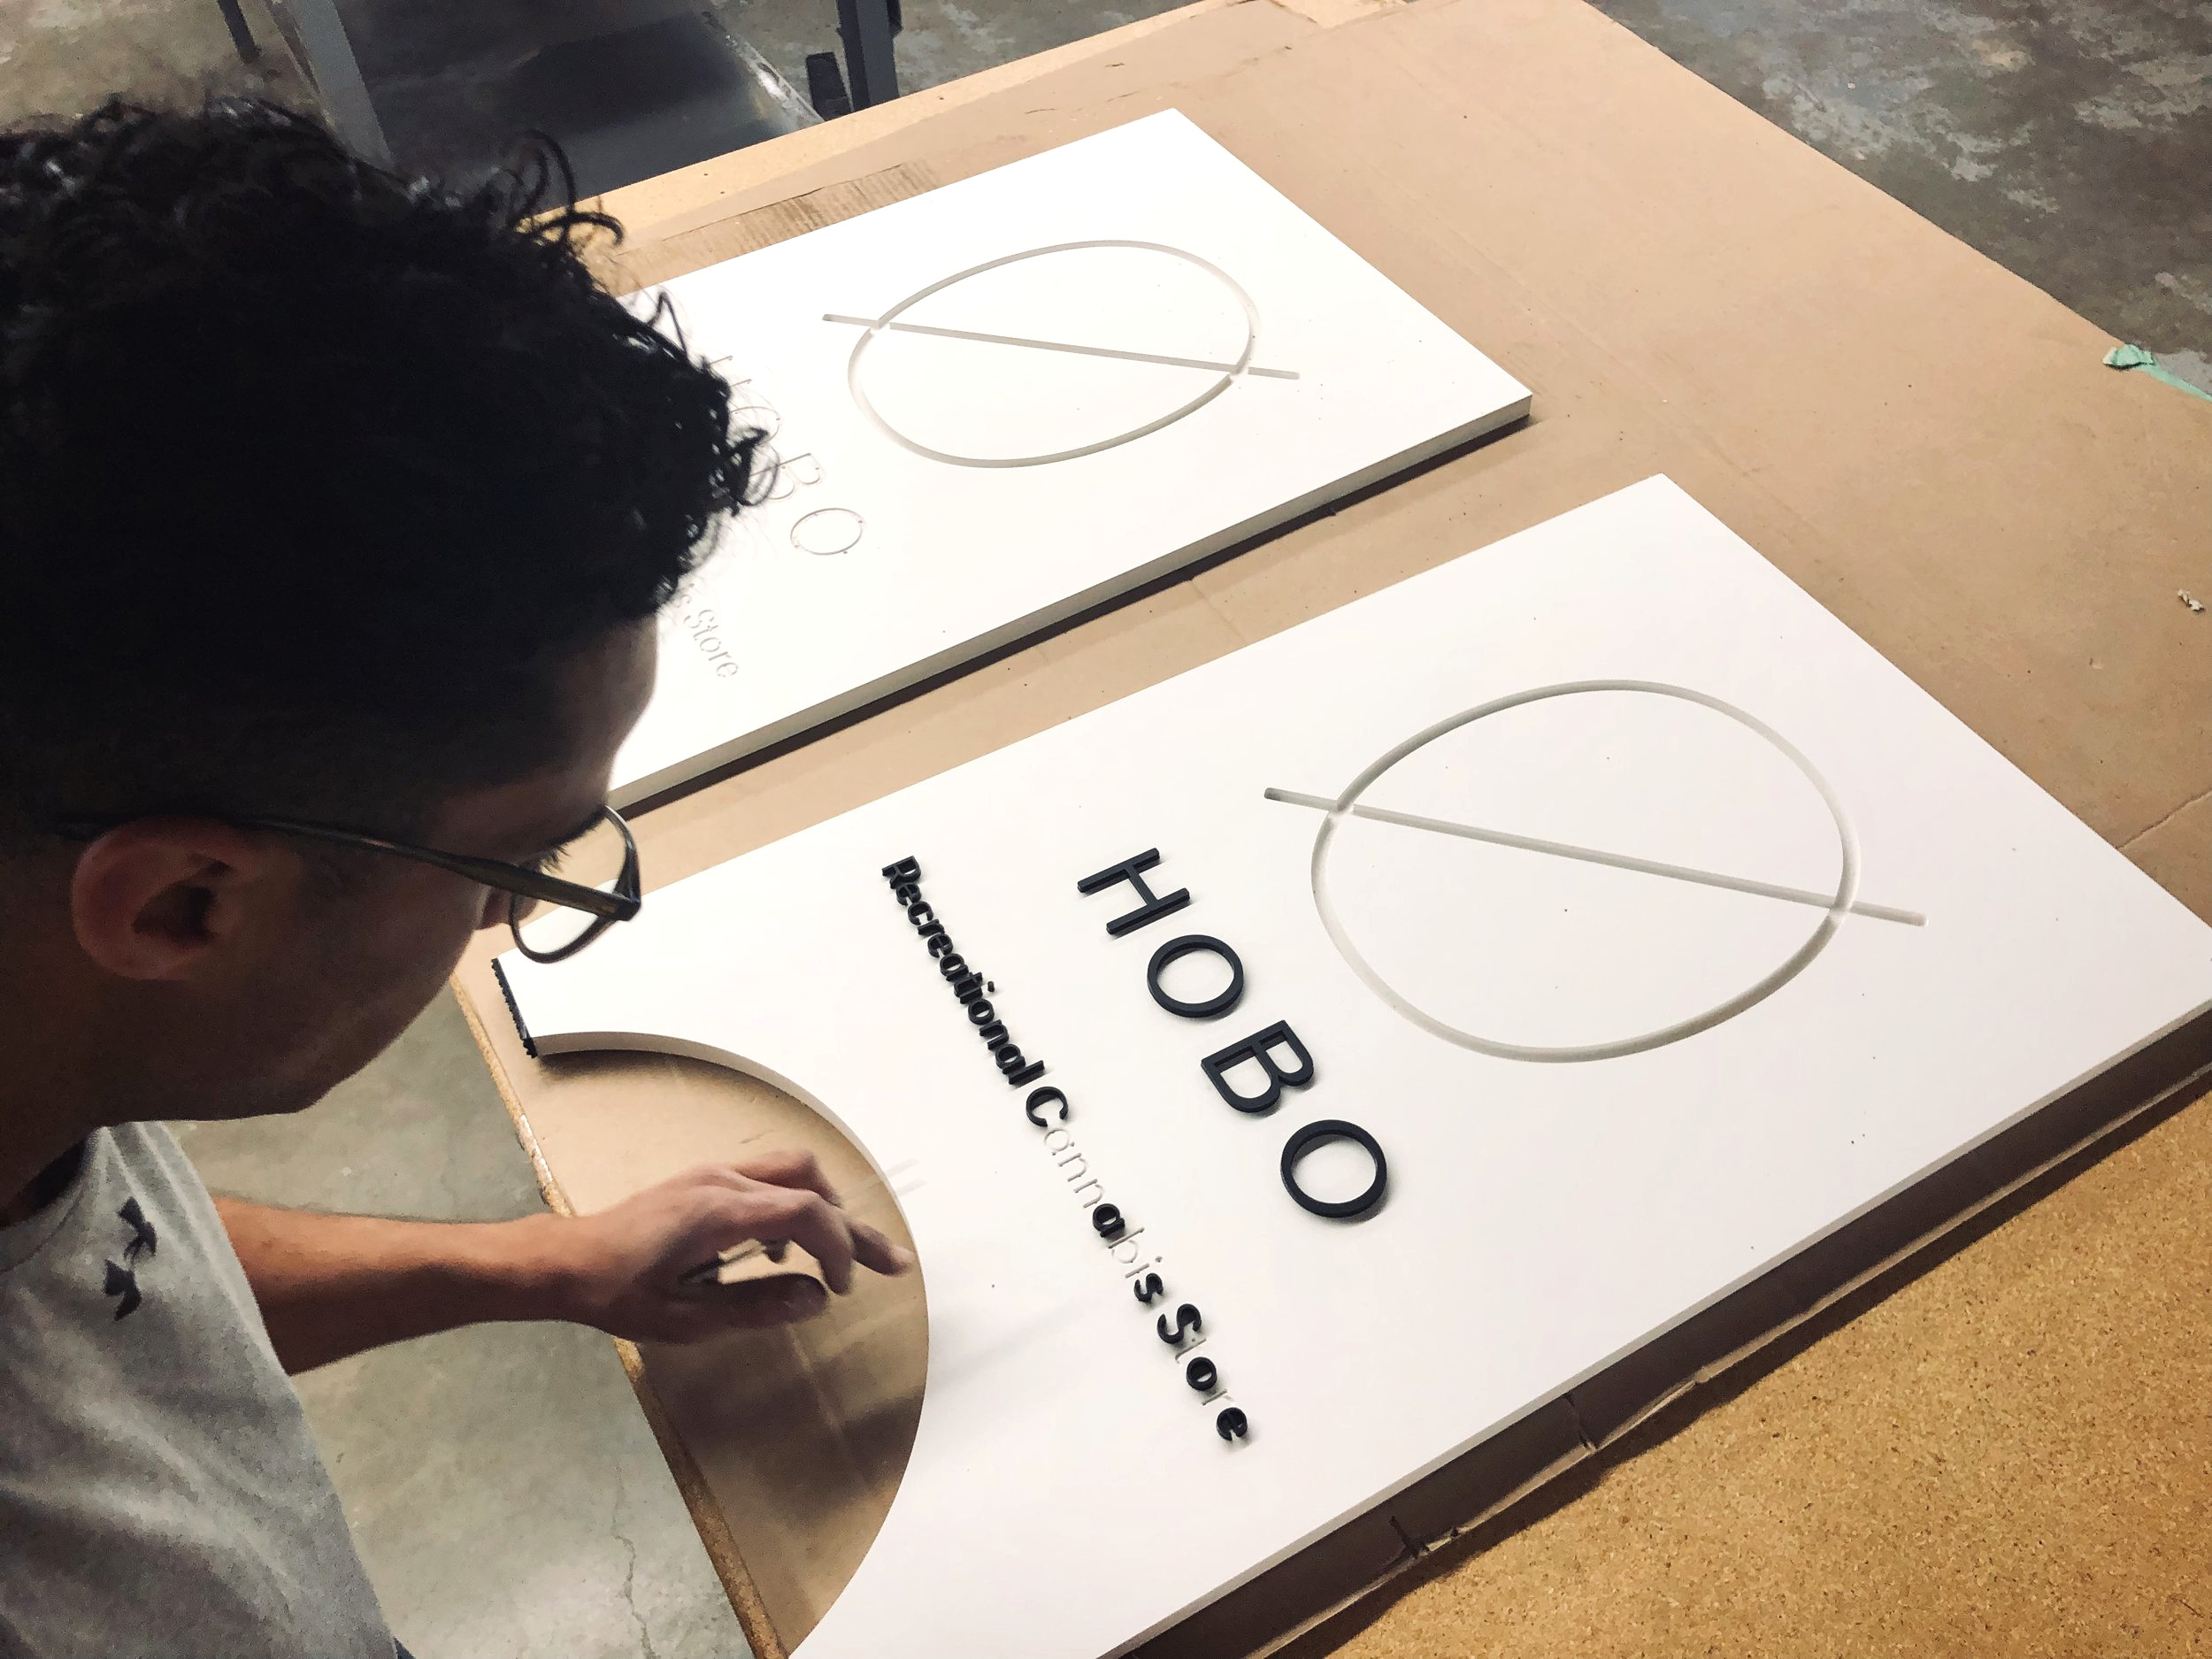 custom+sandwich+boards+and+retail+displays+in+vancouver.jpg